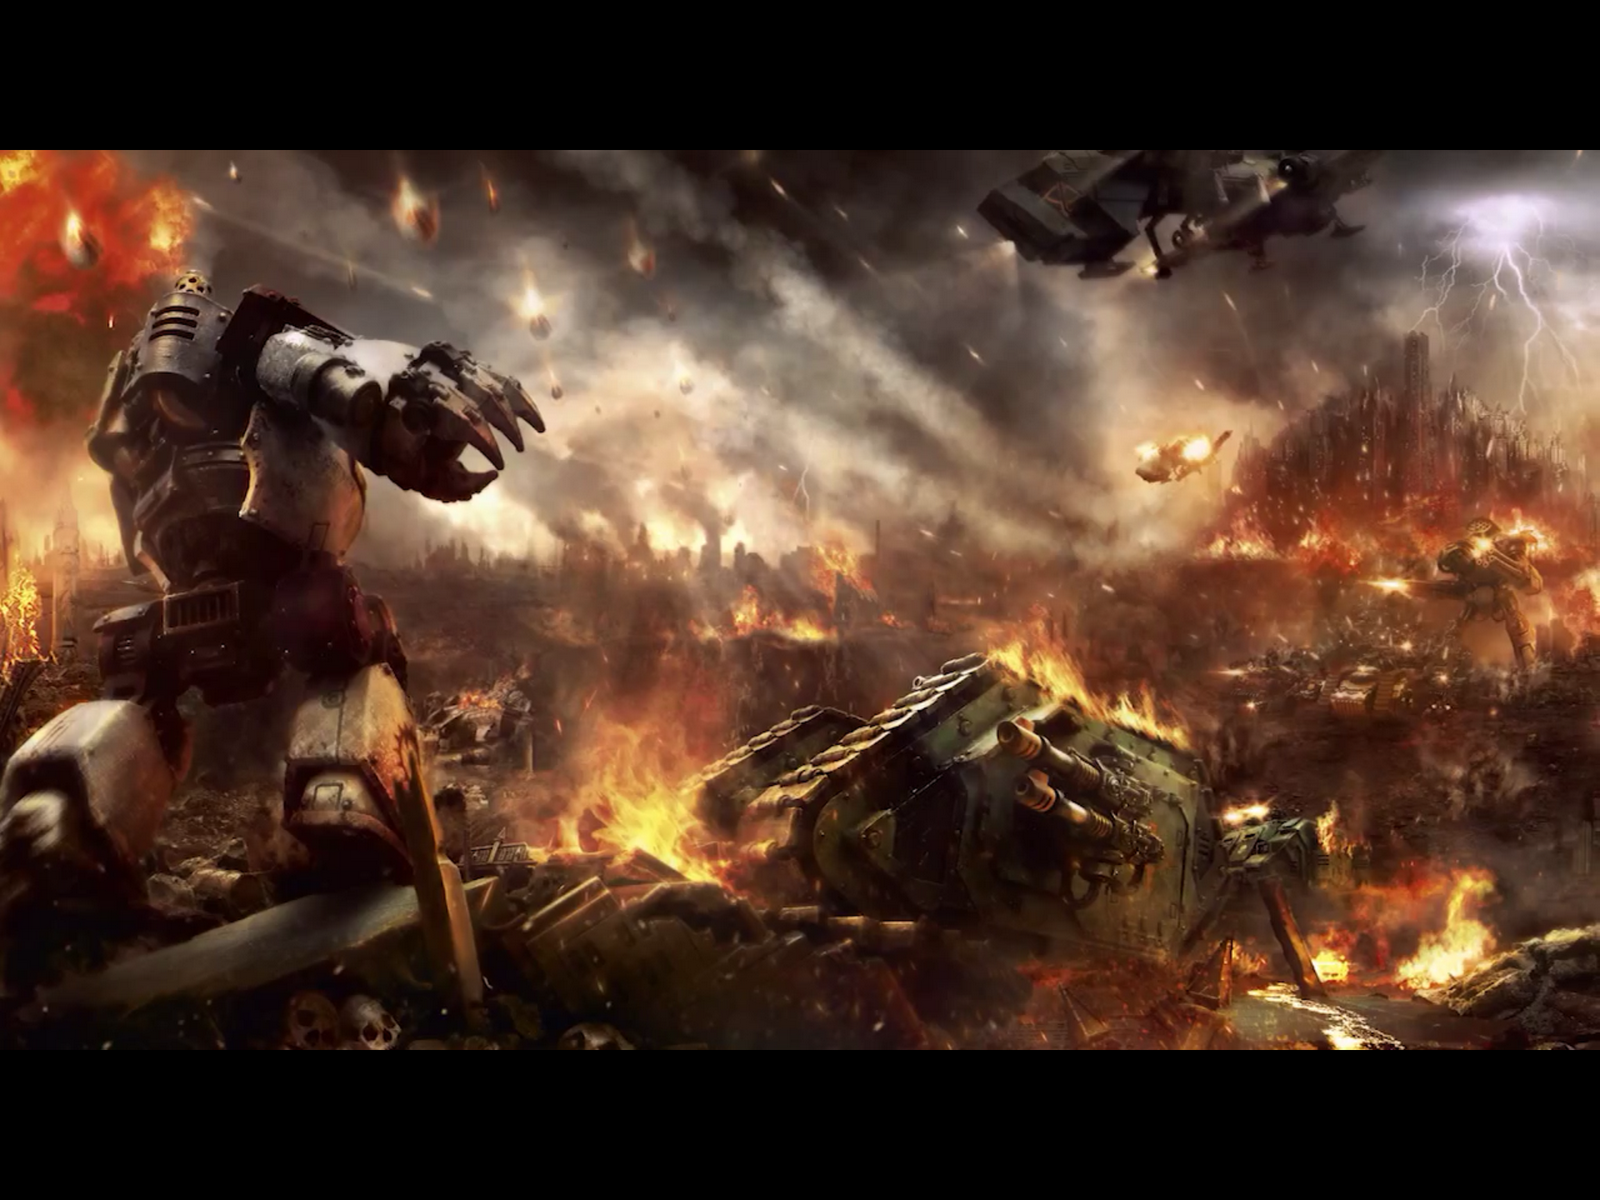 Warhammer 40k death company wallpaper - Warhammer The Horus Heresy The Battle Of Istvaan Iii Begins In Earnest After The Virus Bombing Of The Planet